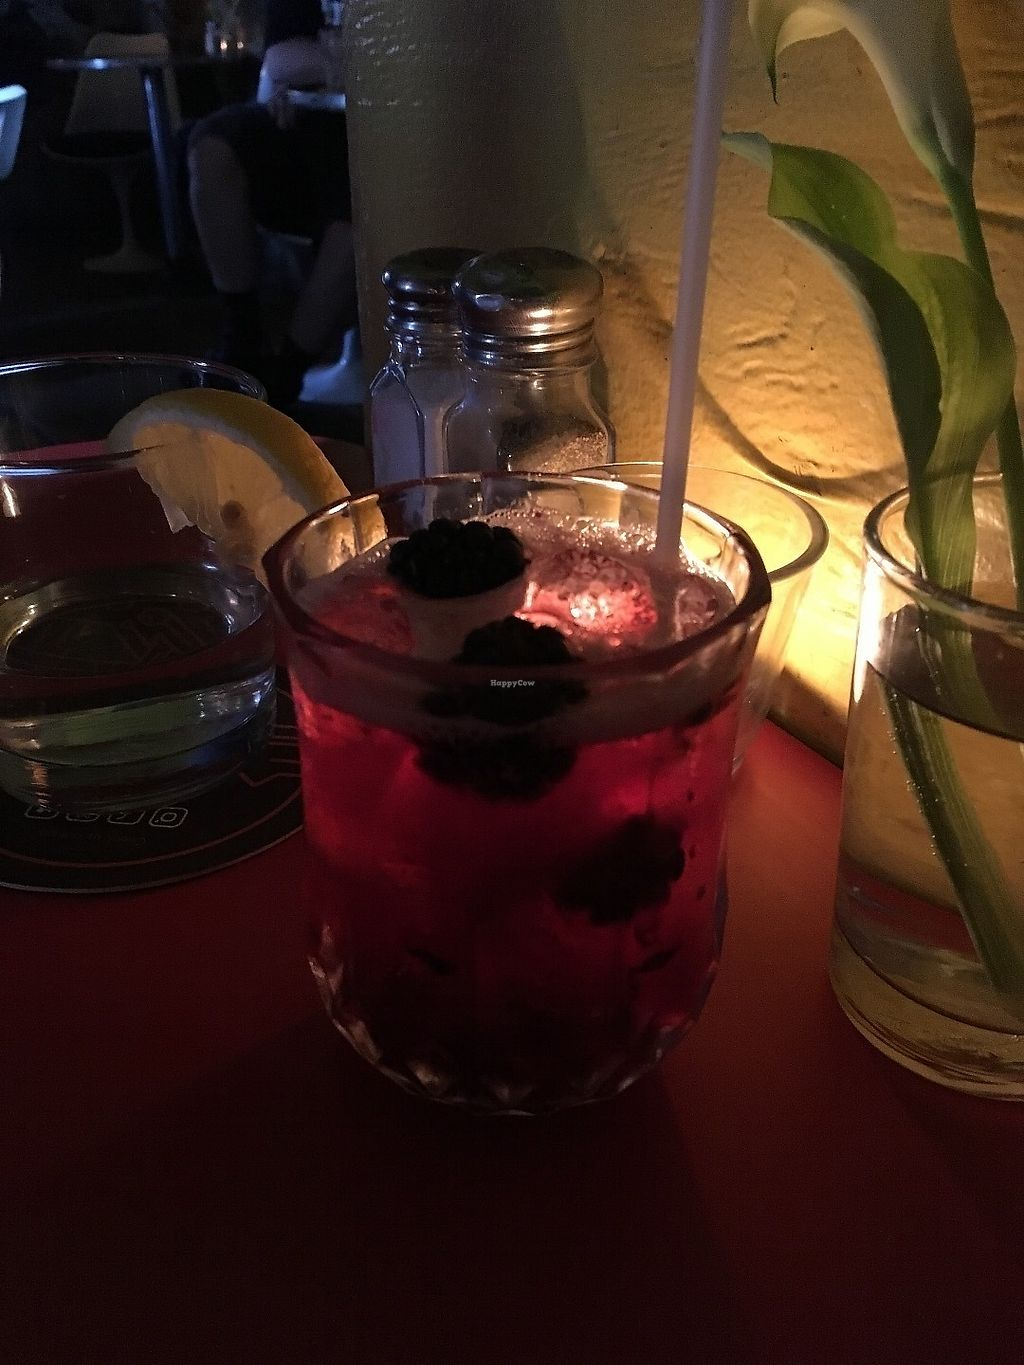 """Photo of Jane Bond Cafe  by <a href=""""/members/profile/Cat_Mamma"""">Cat_Mamma</a> <br/>They always have vegan options and great cocktails <br/> June 18, 2017  - <a href='/contact/abuse/image/1304/270252'>Report</a>"""